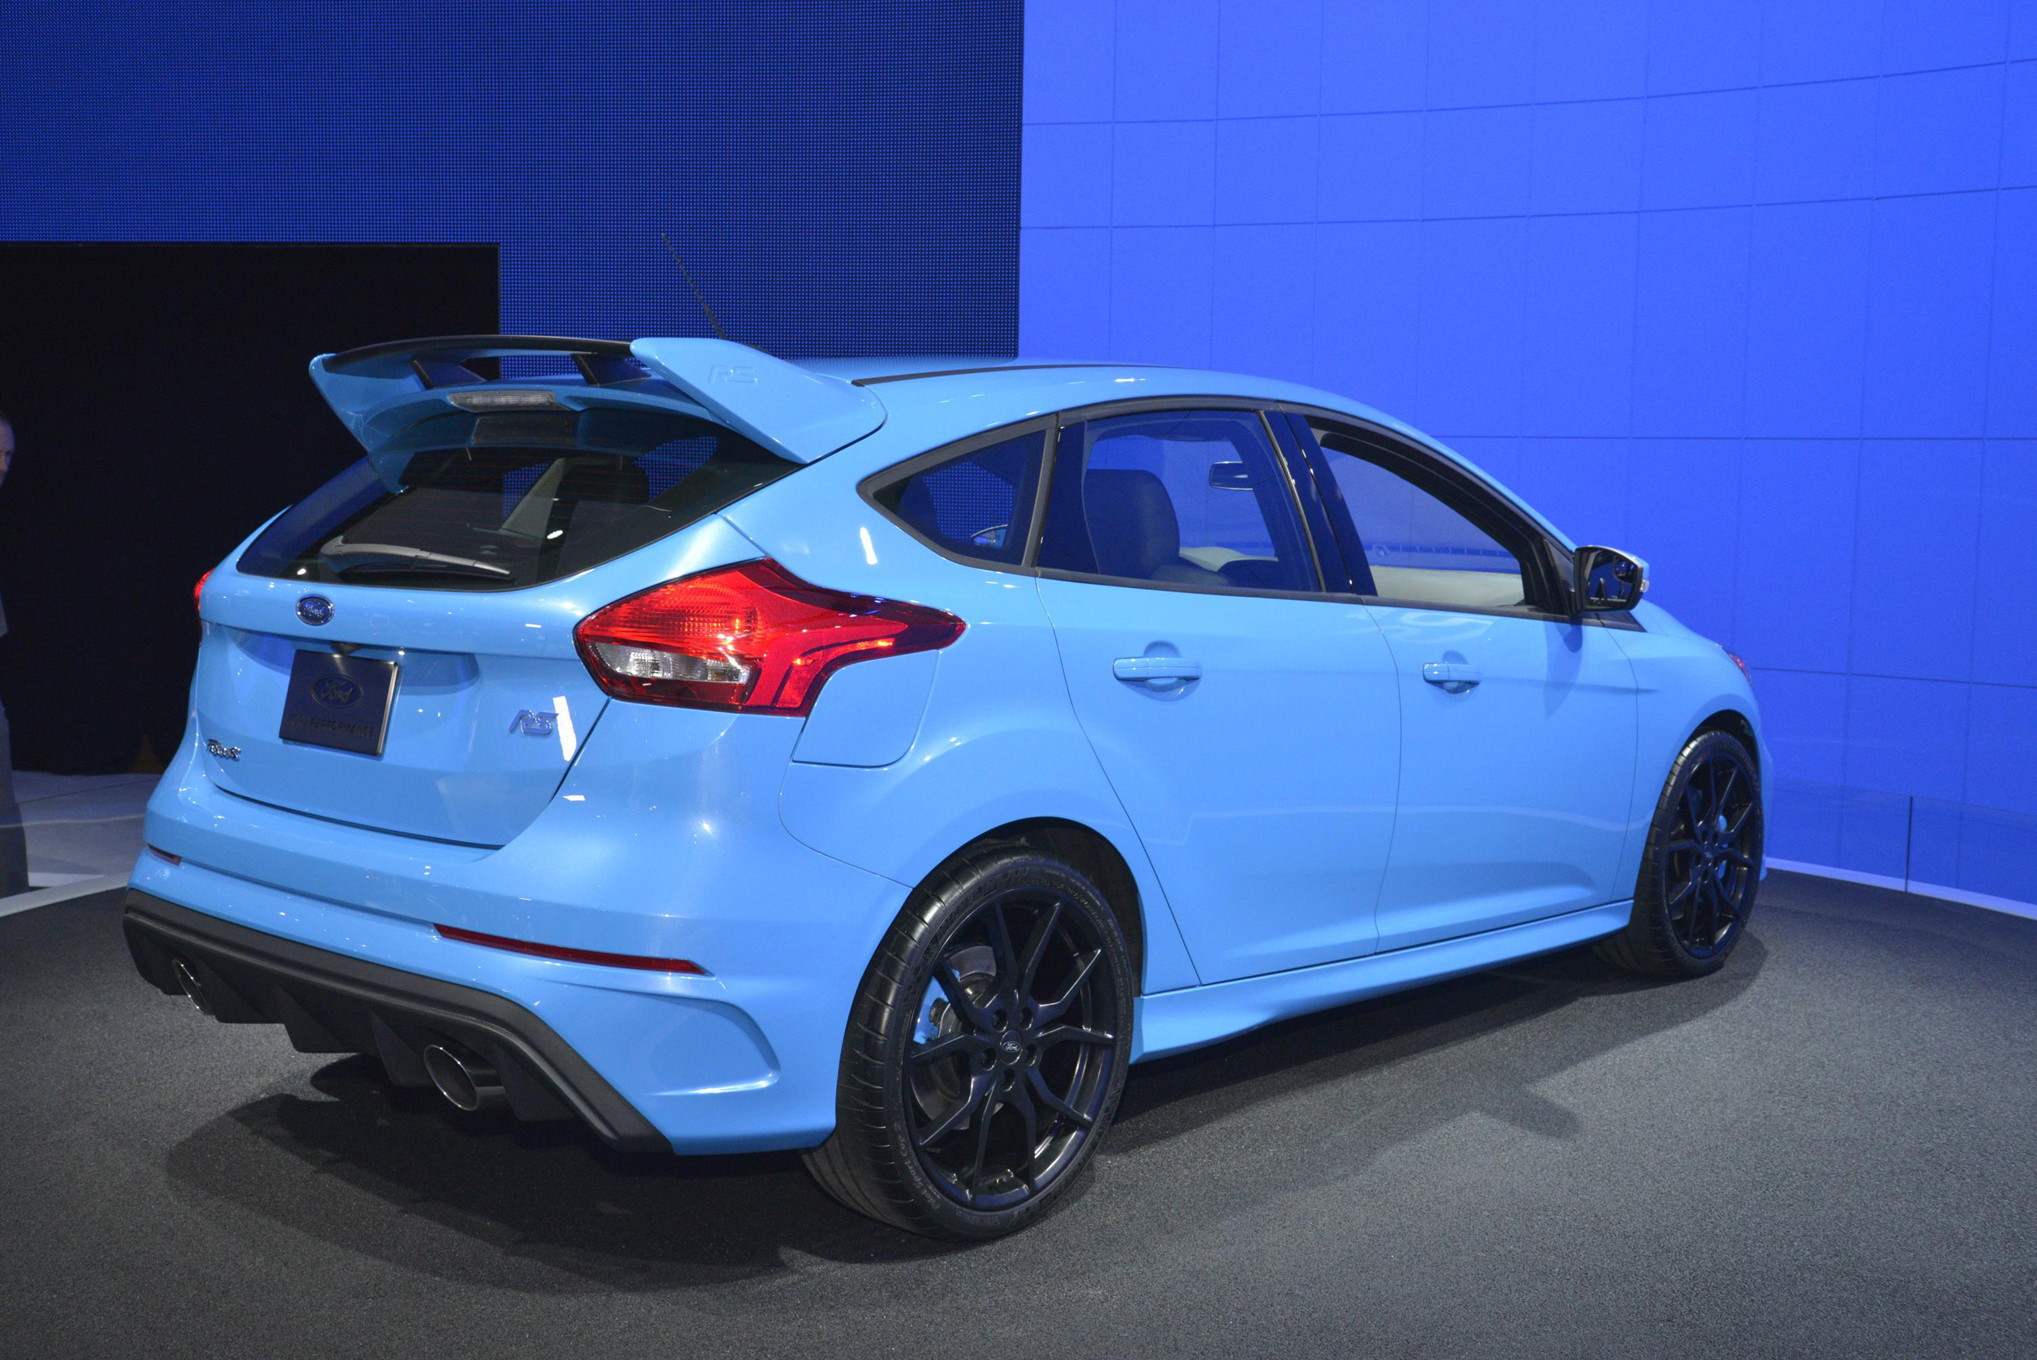 2019 Ford Focus RS new photo - 4